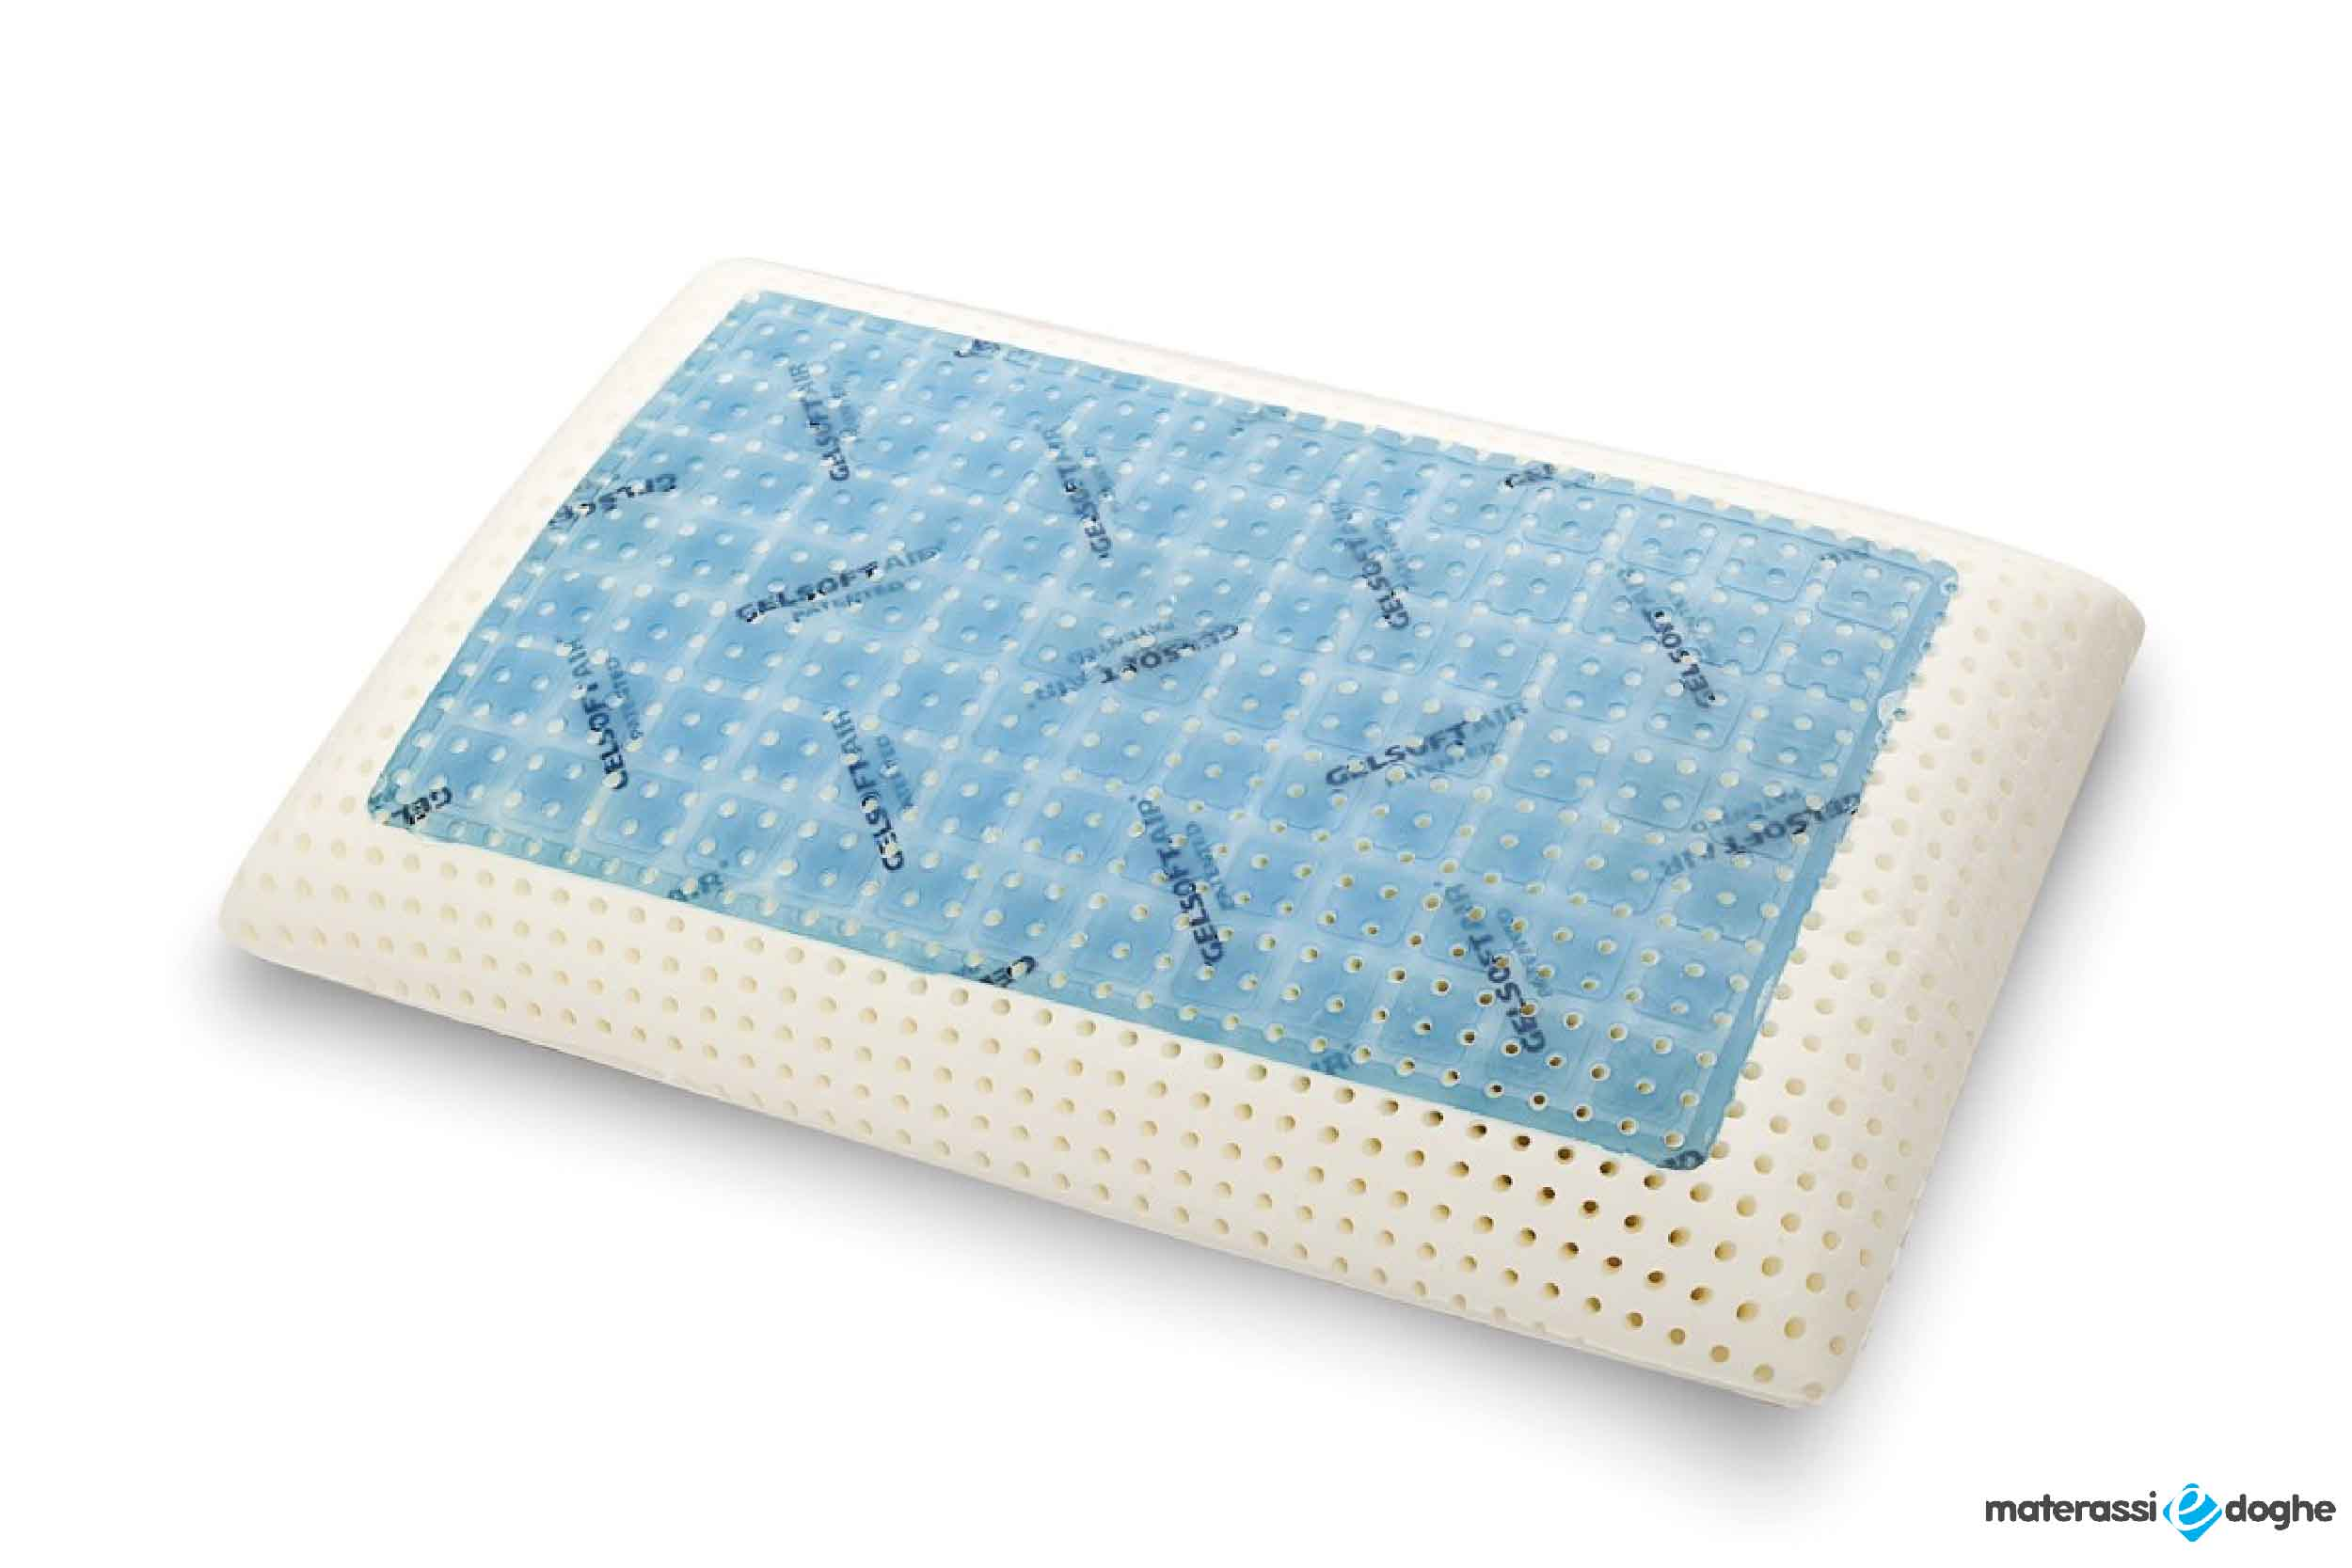 Cuscino MemoGel In MyMemory Memory Foam Termosensibile Traspirante E Gel